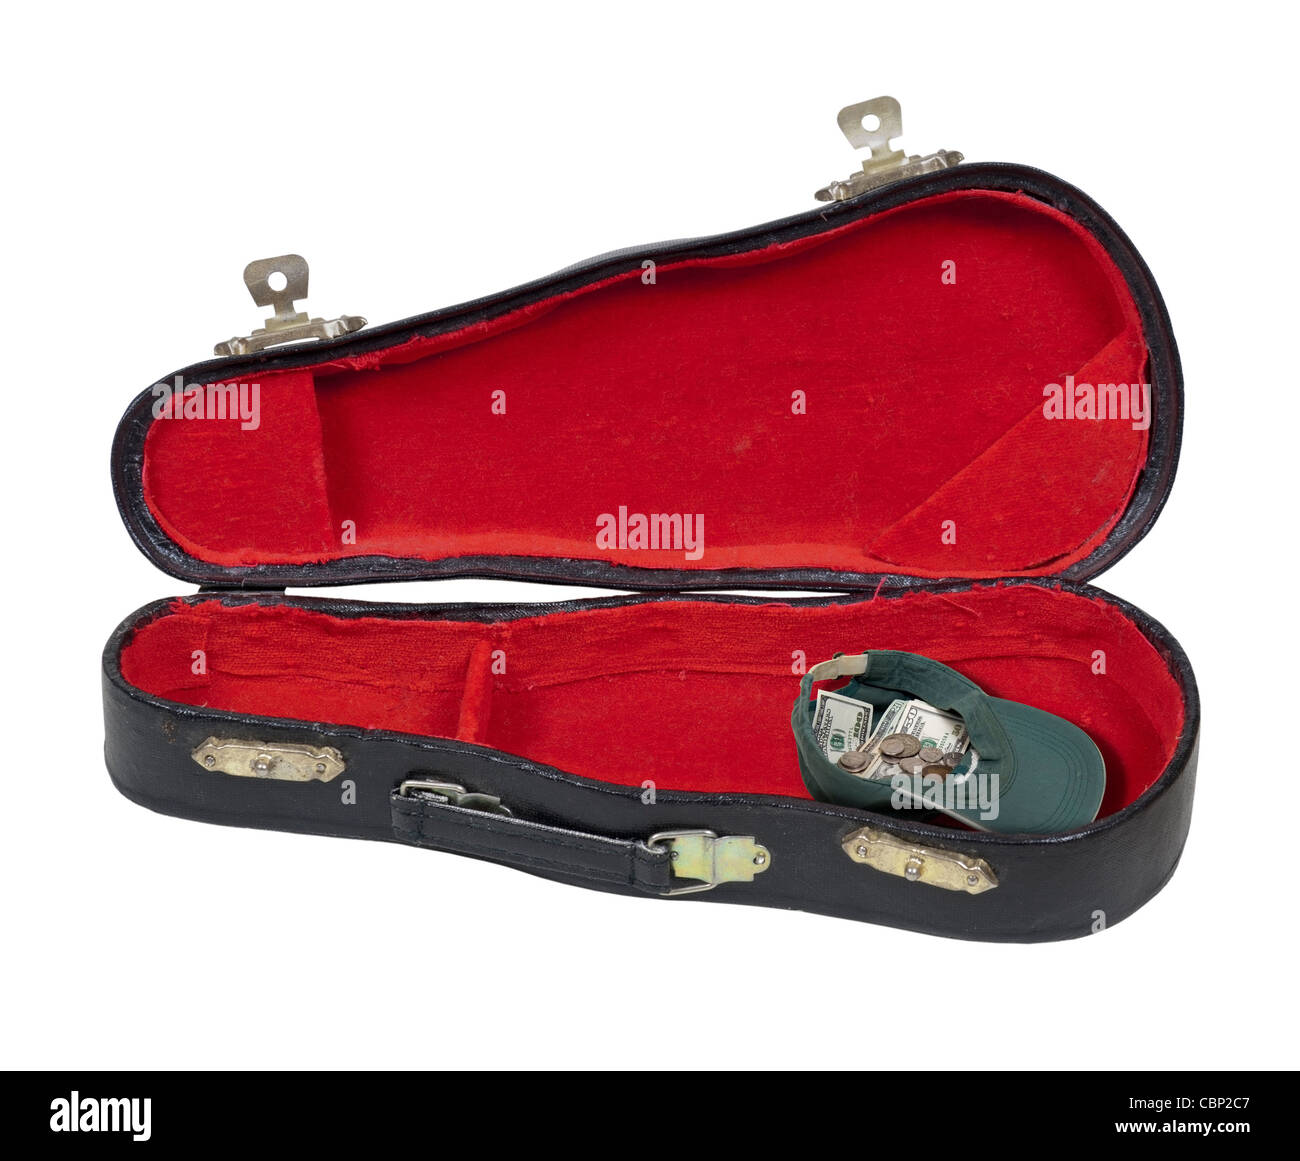 Music case with a hat full of money to hold tips during performances - path included - Stock Image